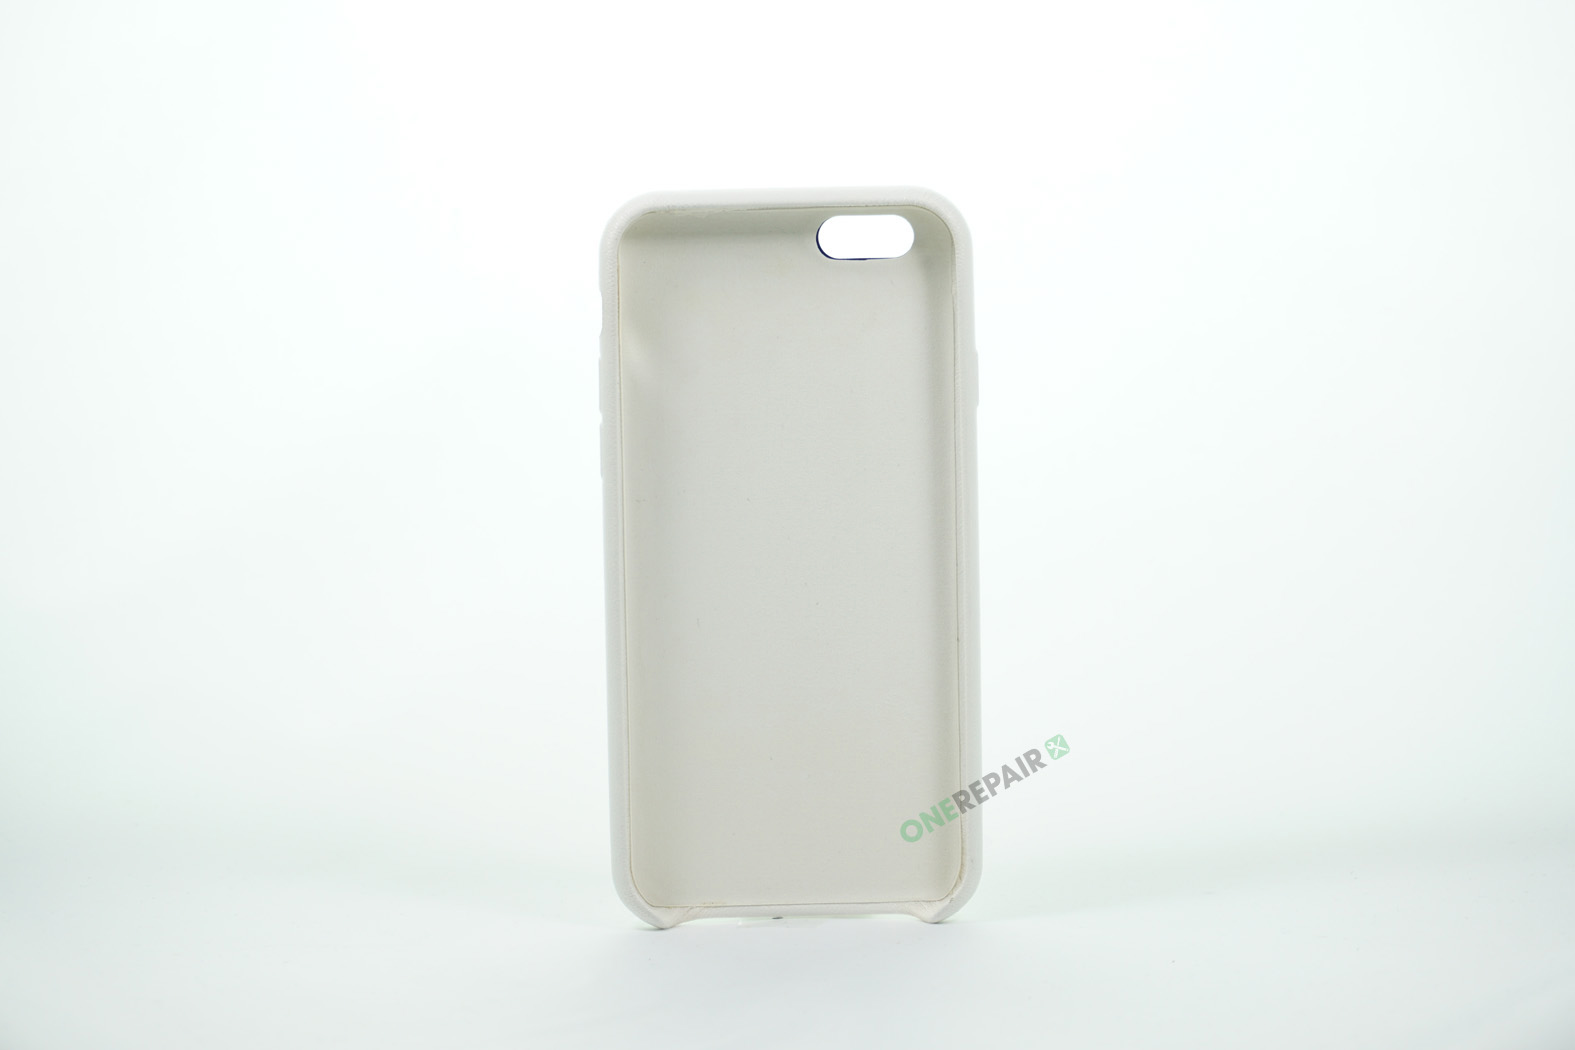 350537_iPhone_6_6S_Kunstlaeder_Cover_Hvid_OneRepair_WM_00003